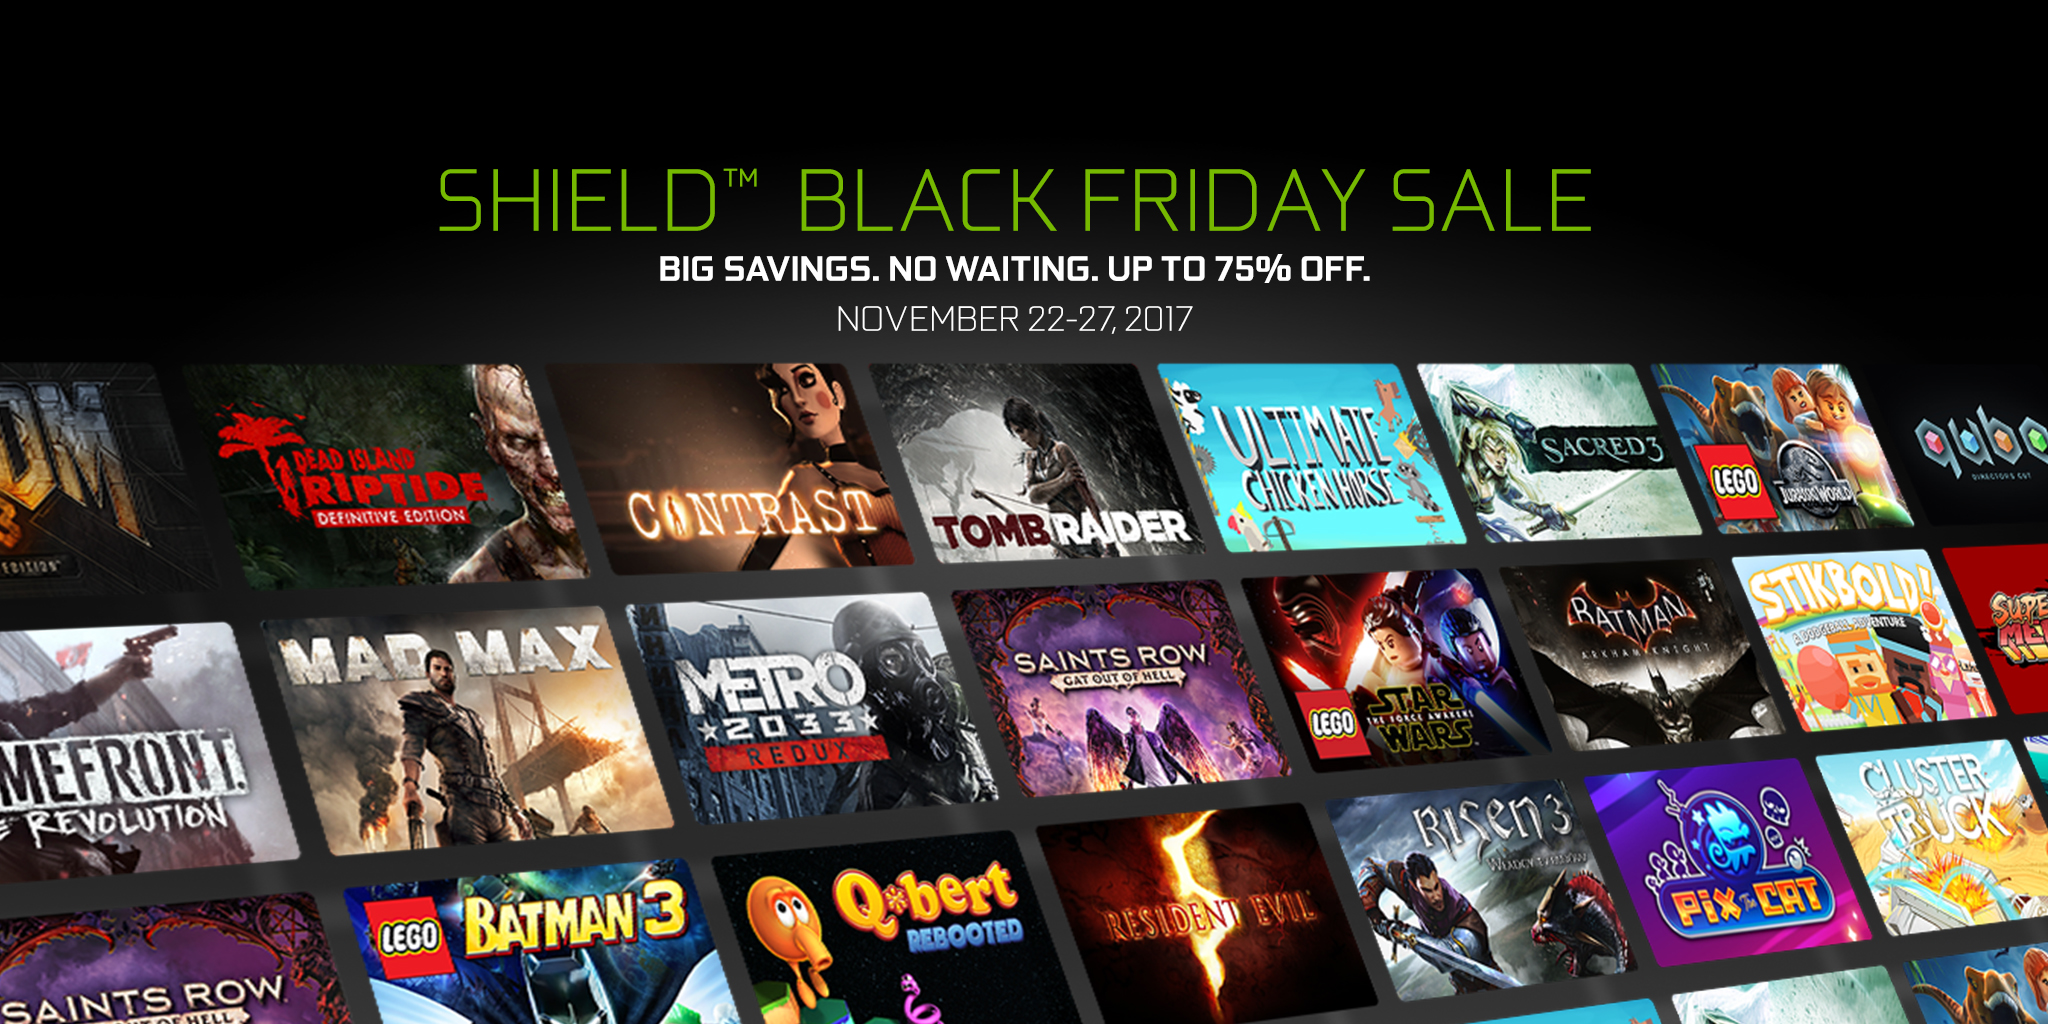 SHIELD Black Friday Game sale